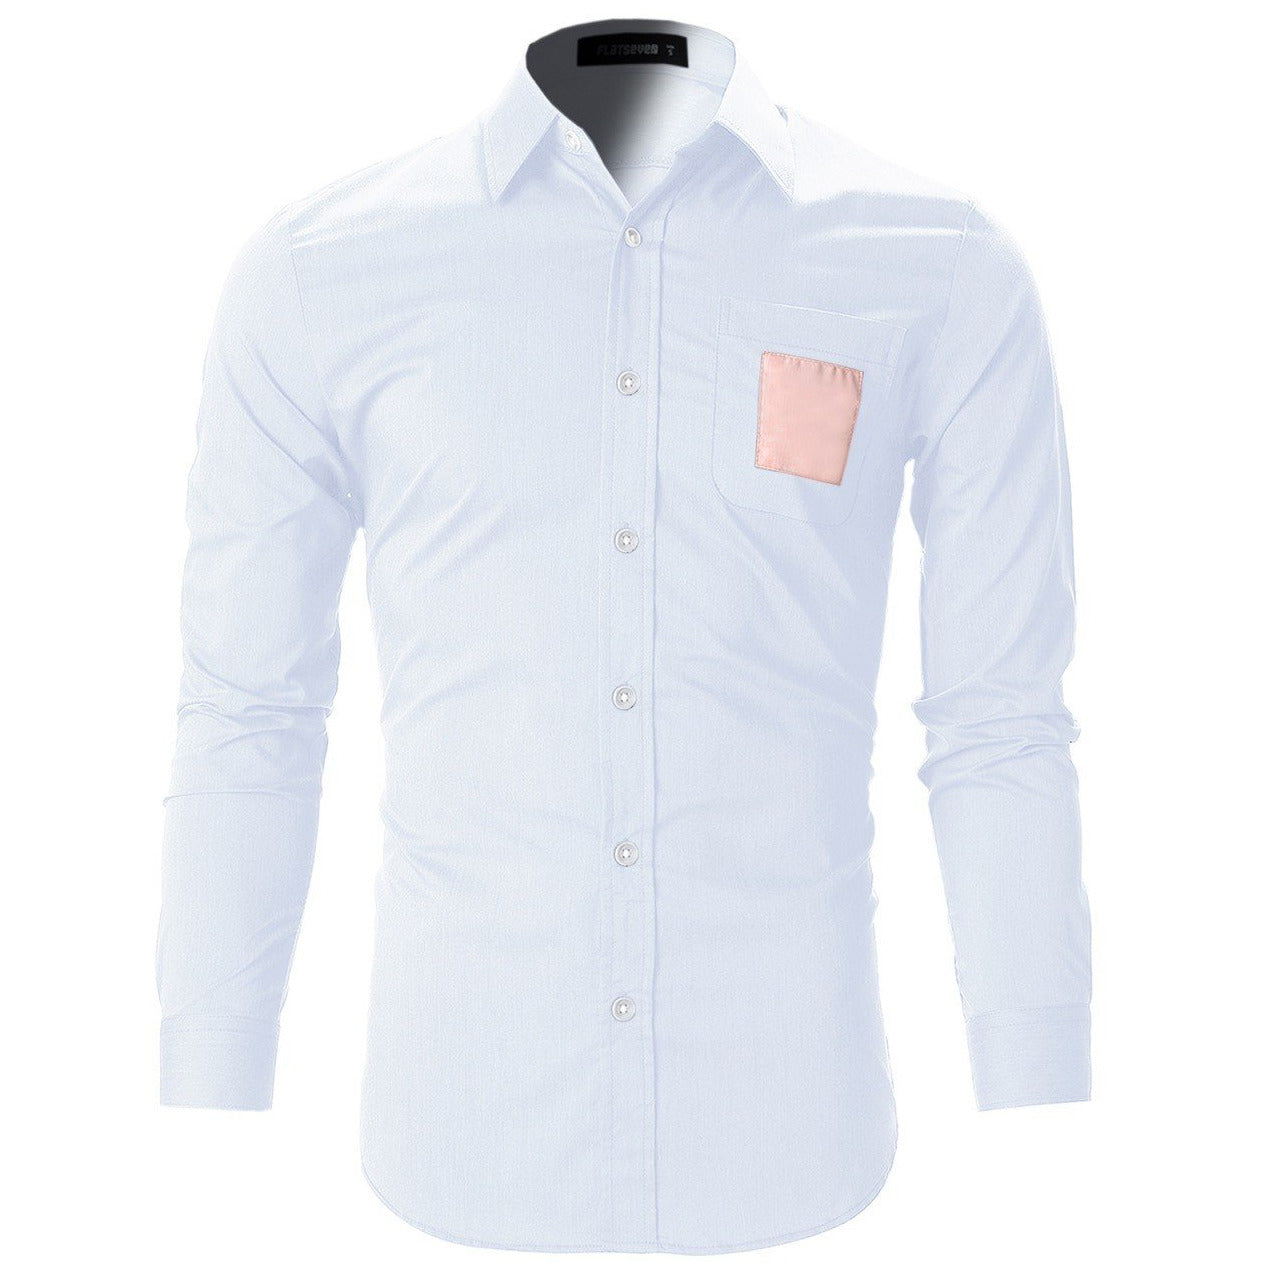 Square Patched Pocket Casual Dress Shirts